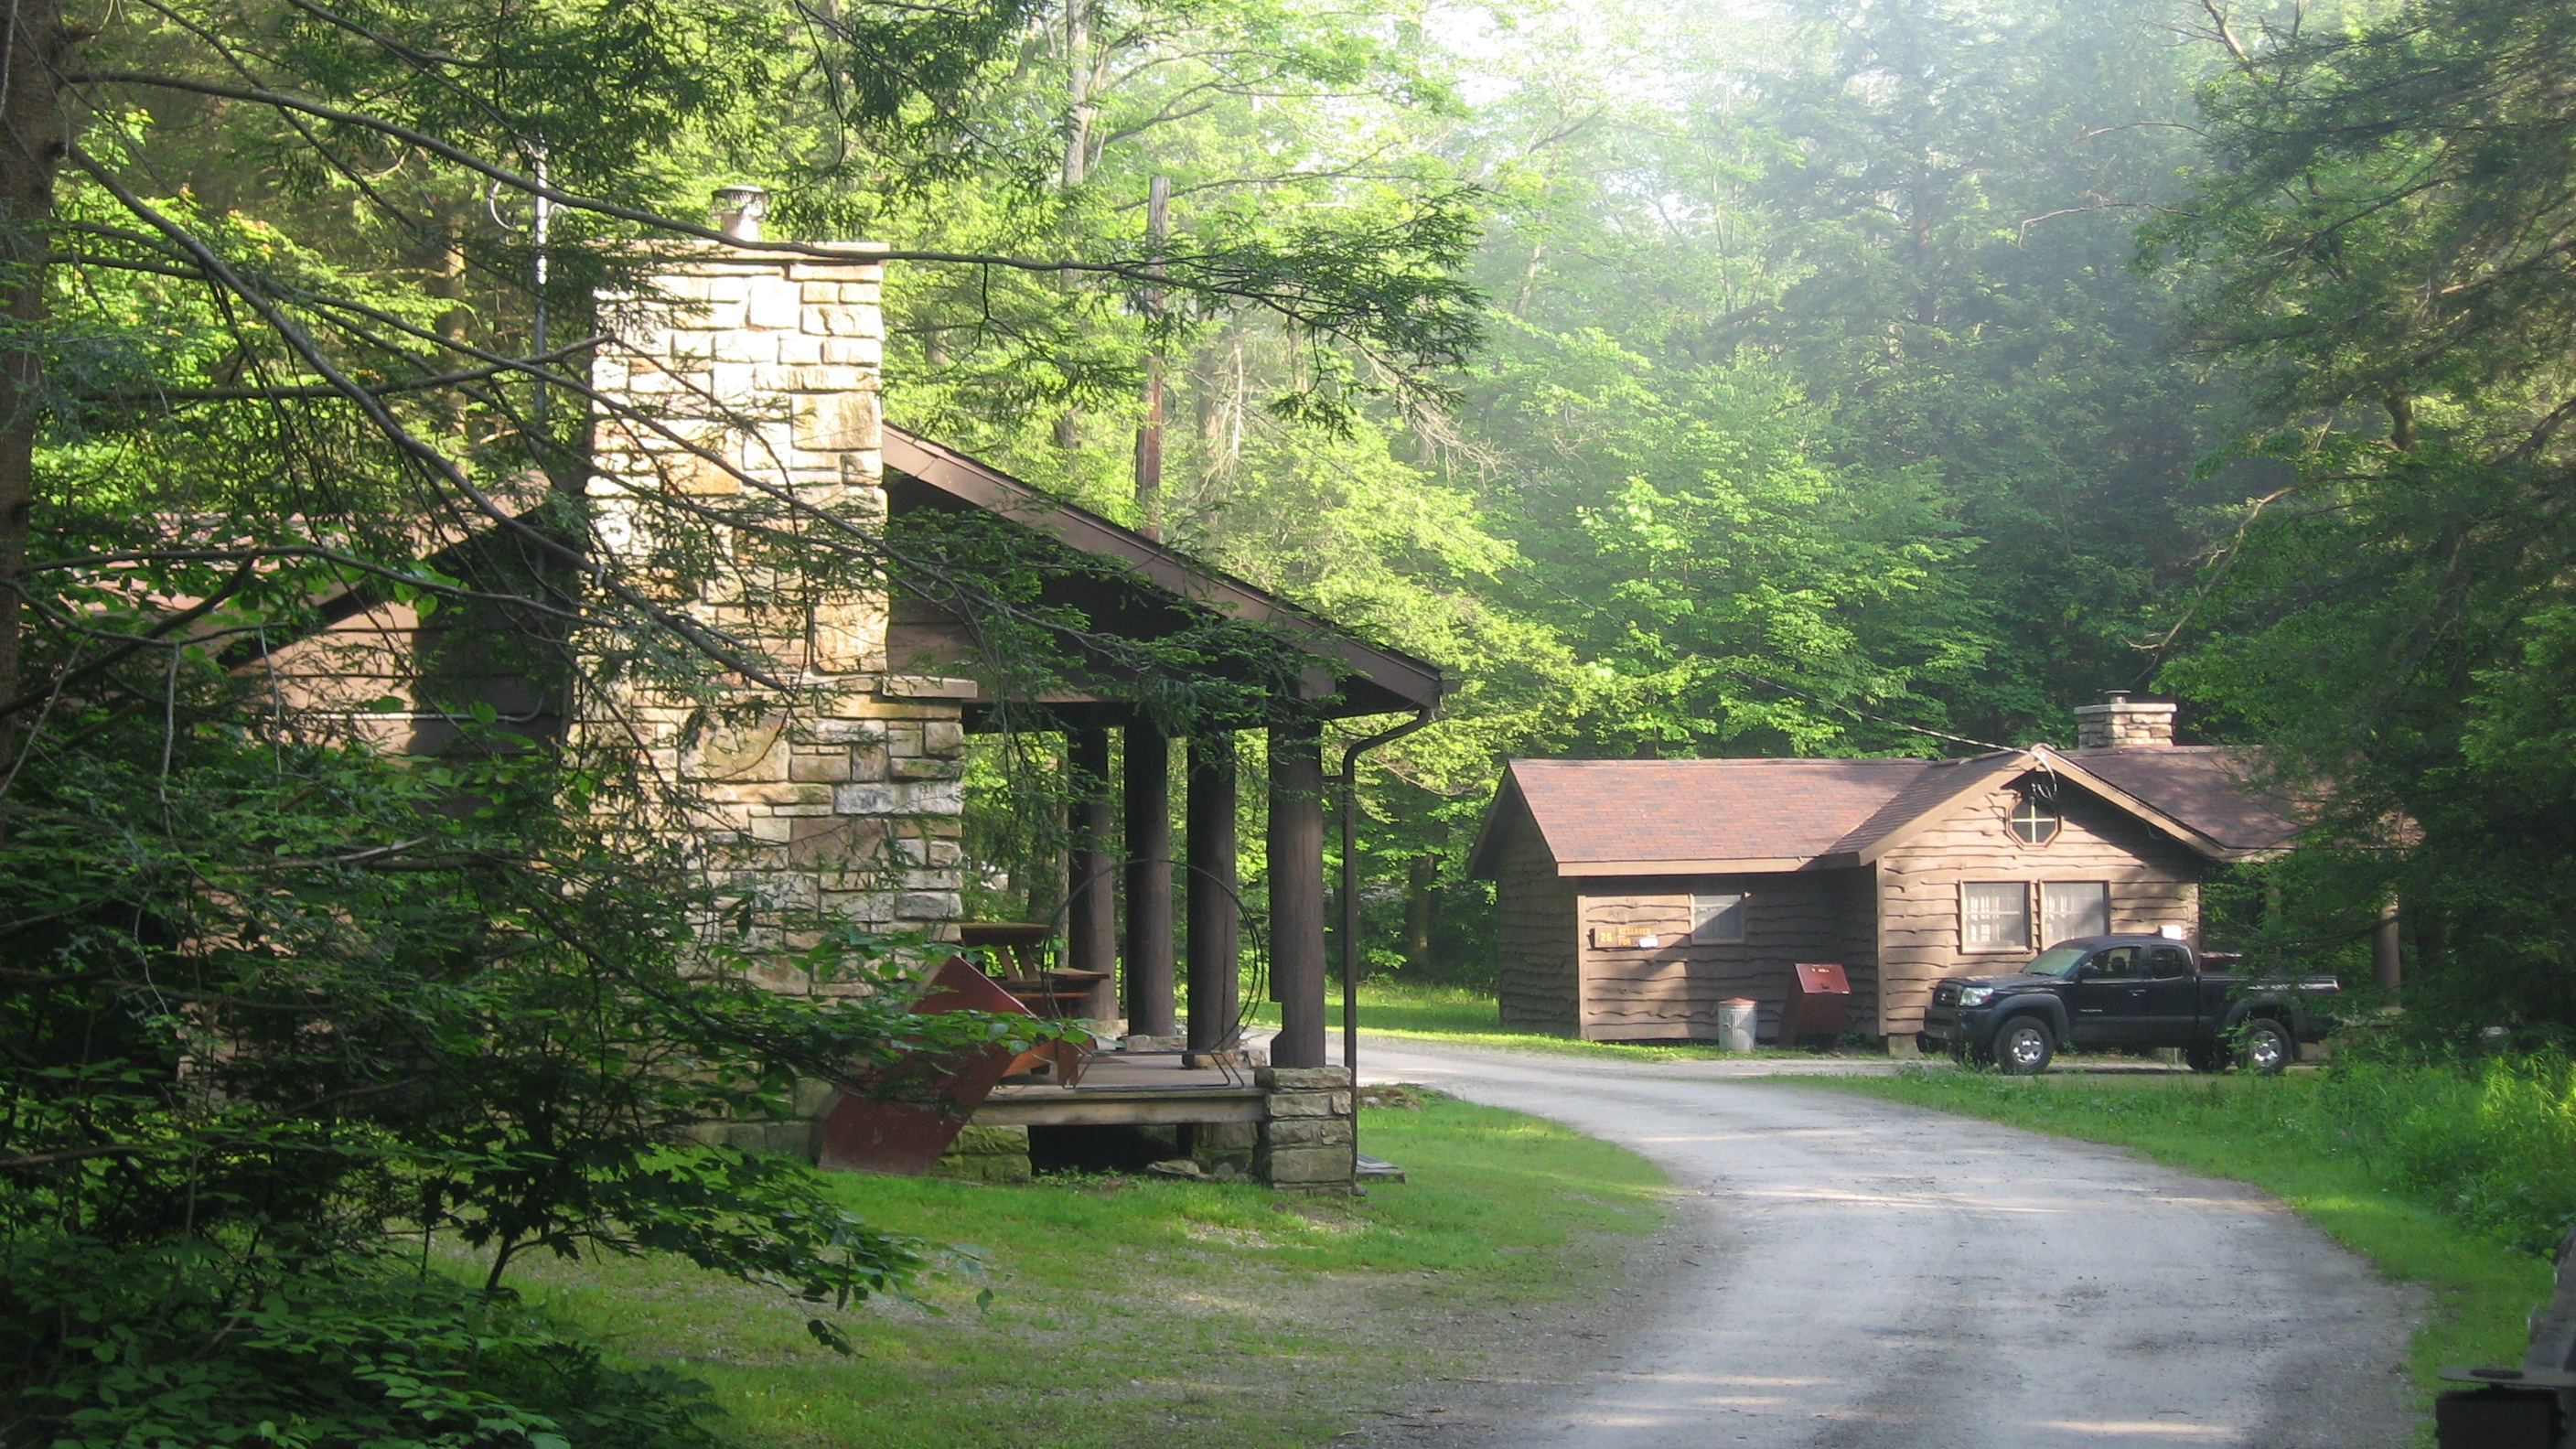 File:Two Cabins At Kooser State Park